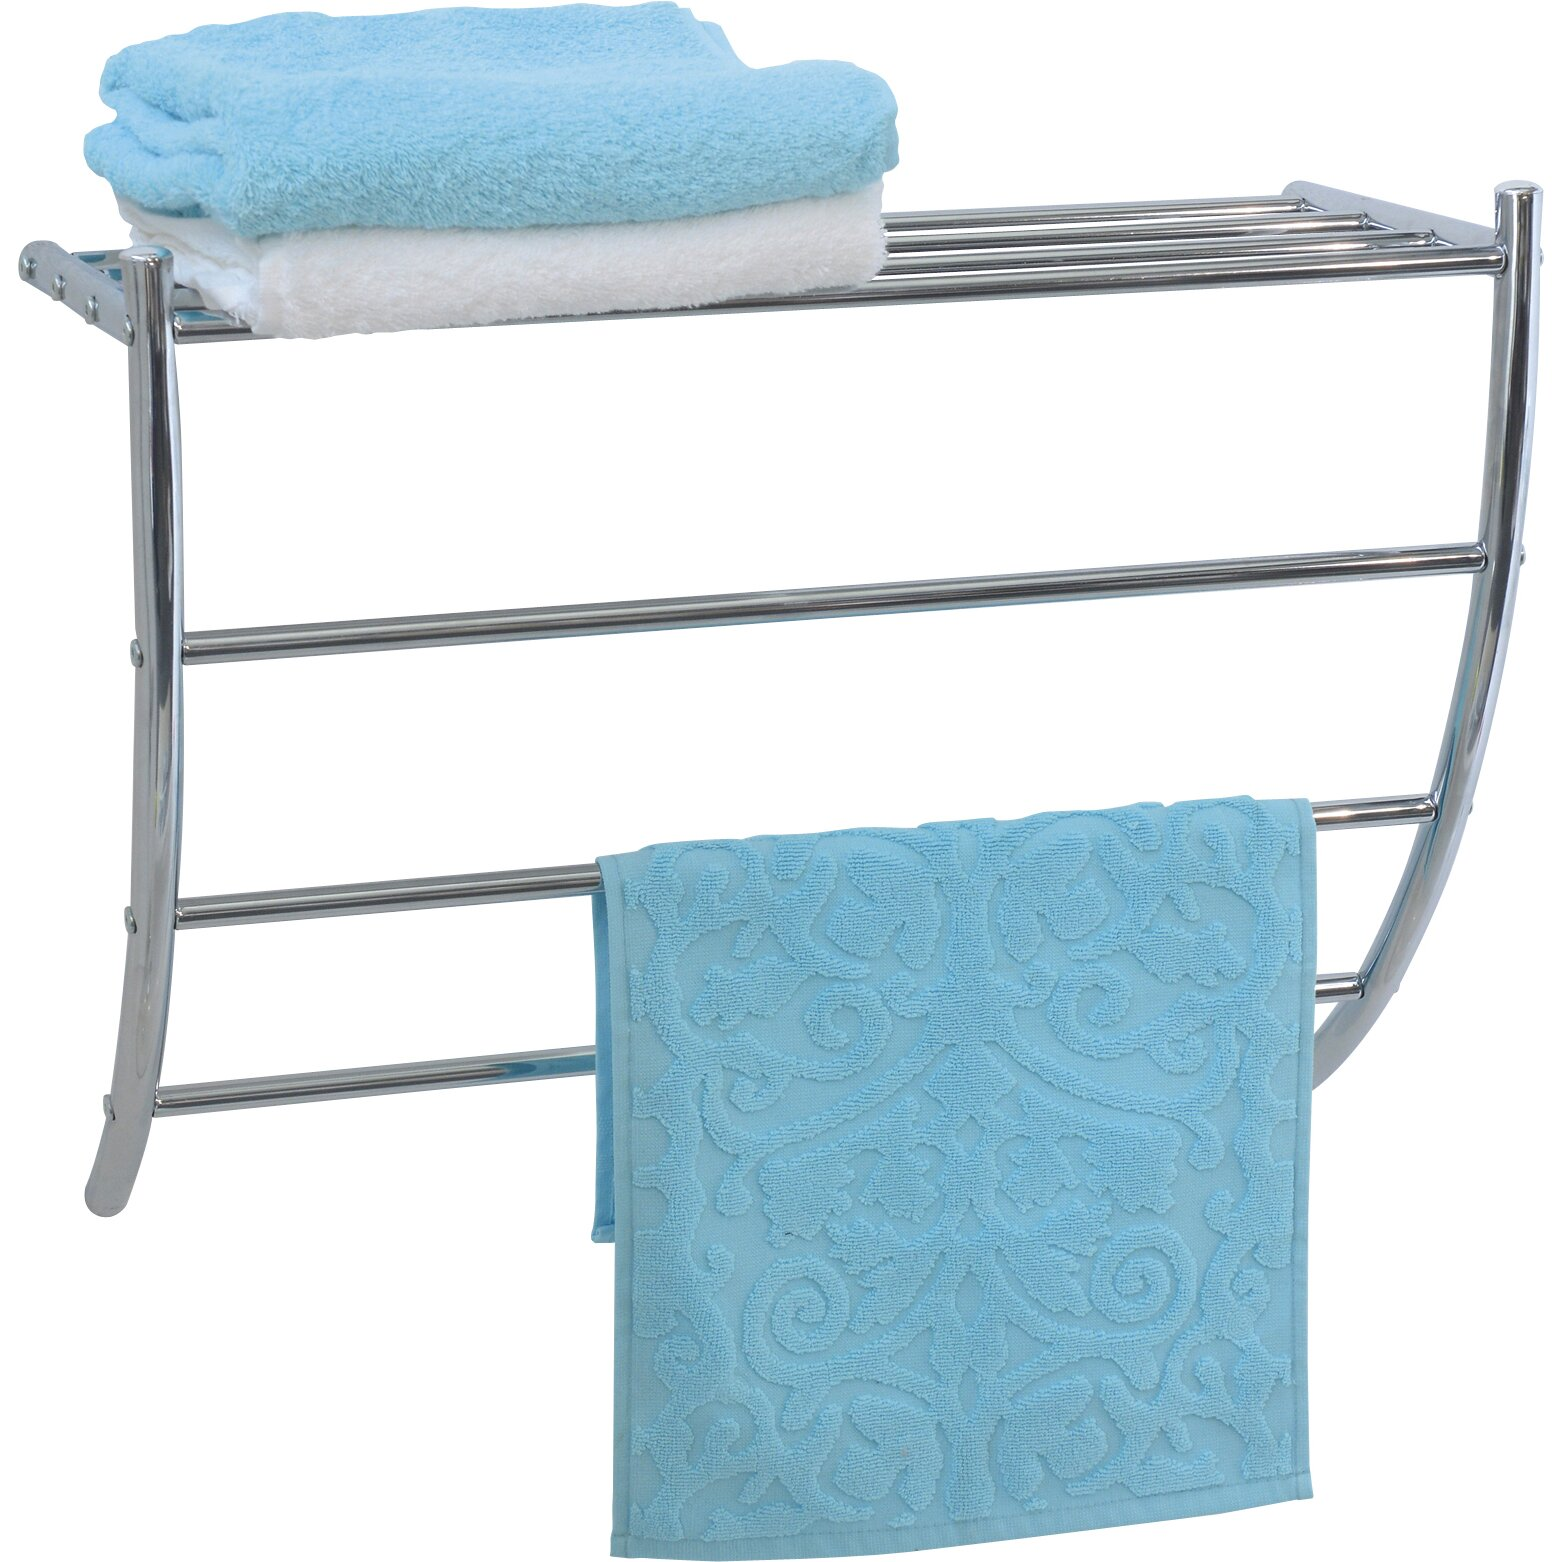 Evideco wall mounted bath shelf and towel rack reviews for Bathroom towel racks